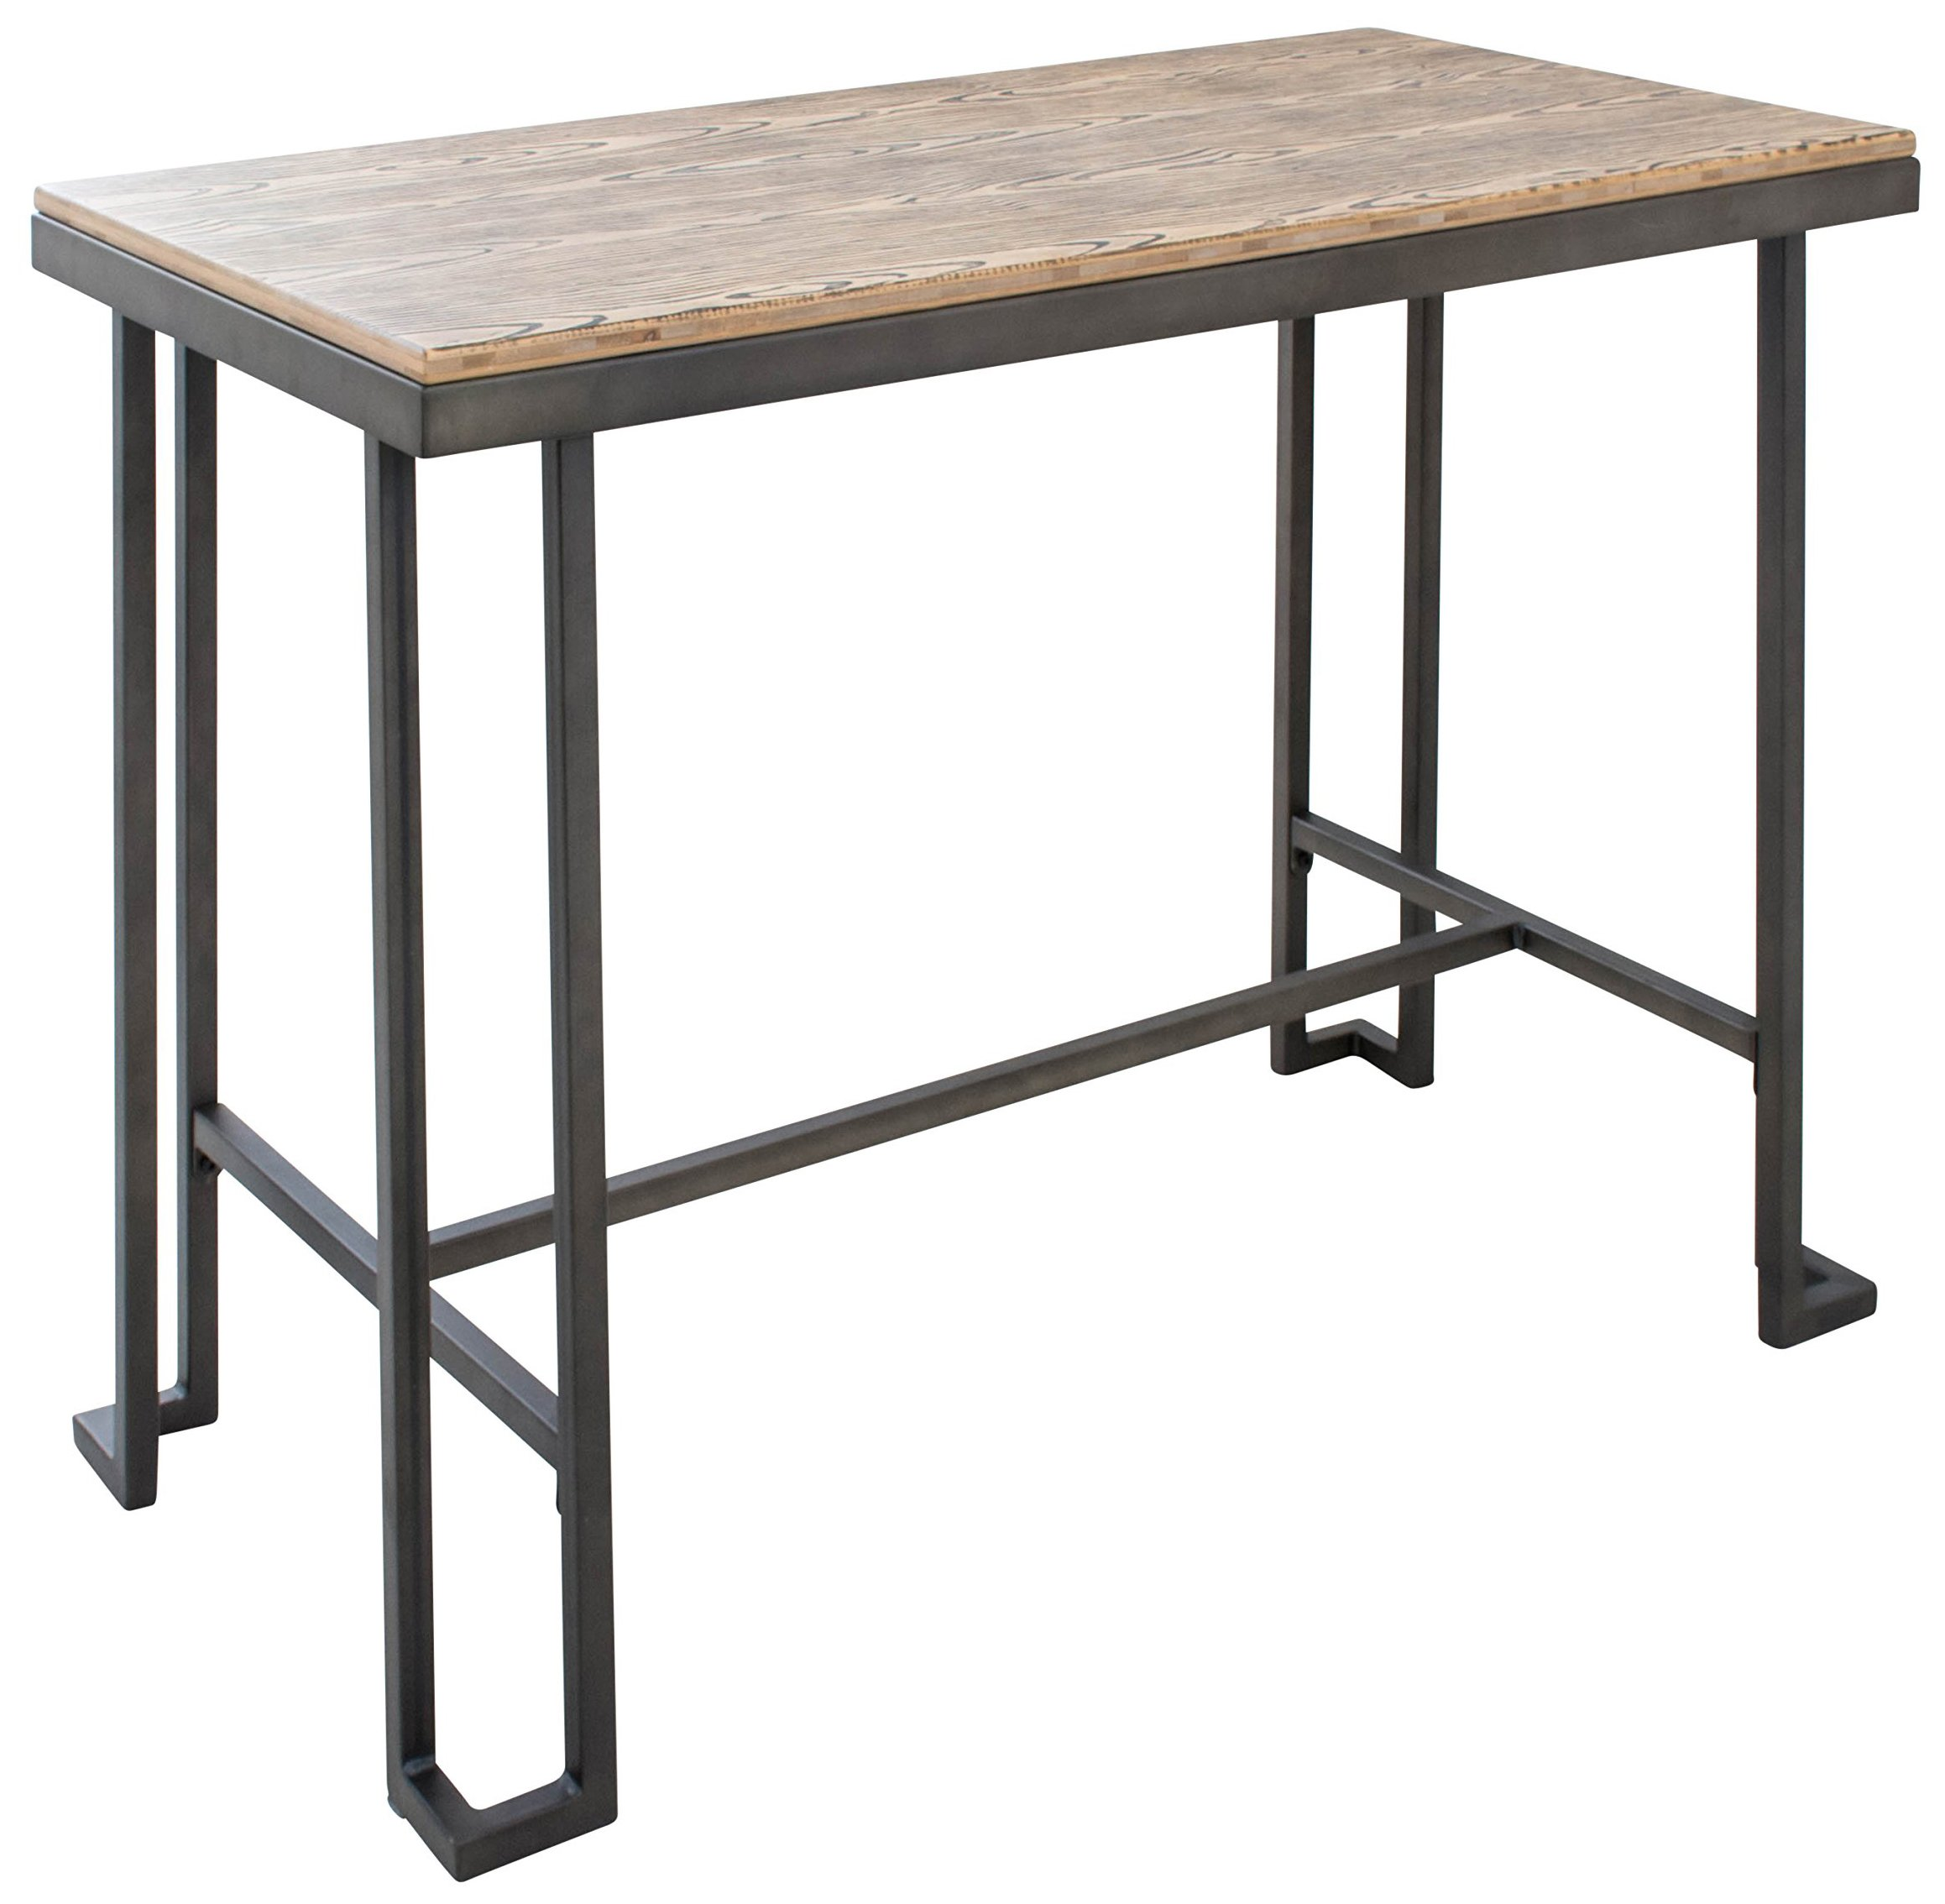 LumiSource Roman Counter Table, Antique Brown